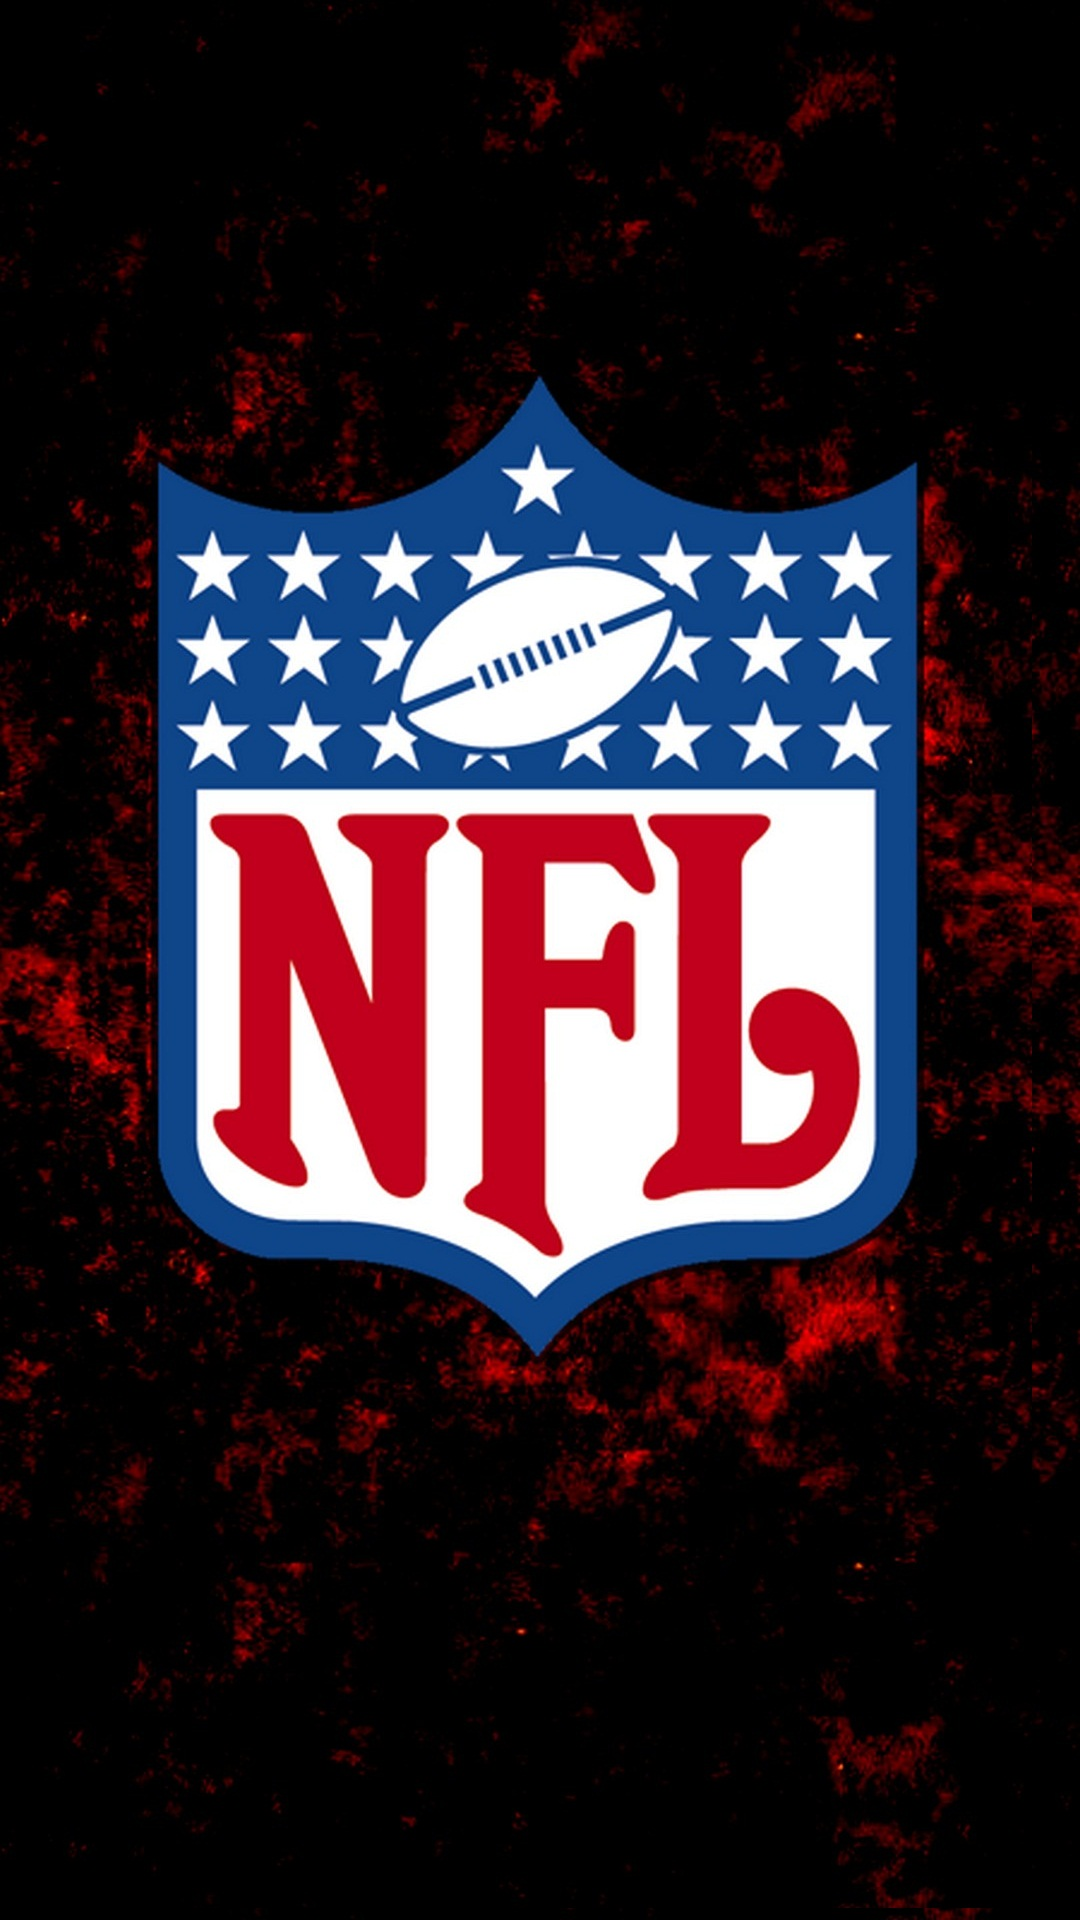 Football Wallpapers Hd For Android Cool Nfl Iphone X Wallpaper 2019 Nfl Football Wallpapers